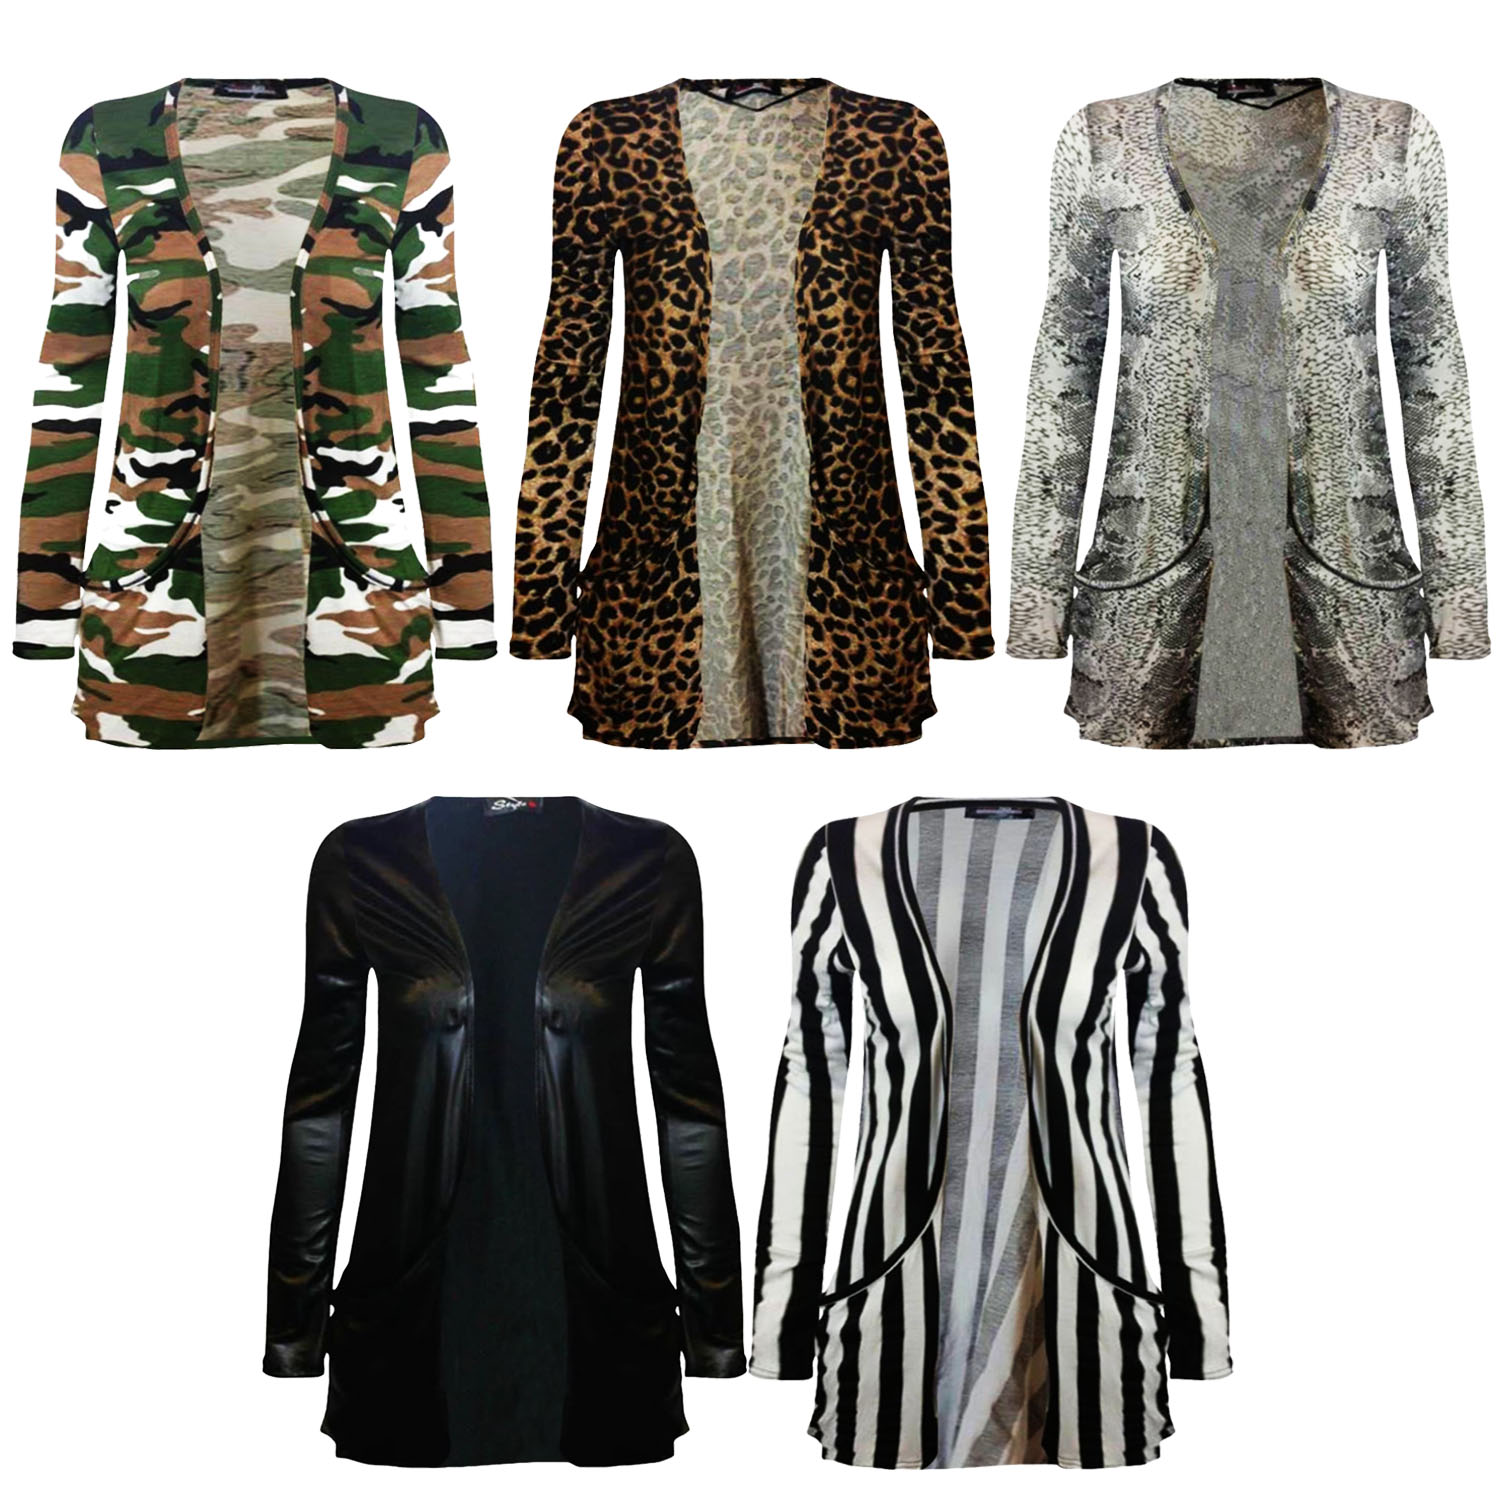 a2300baa7a Details about New Animal Print Ladies Open Front Pocket Boyfriend Cardigan  Style TOP UK 8-26